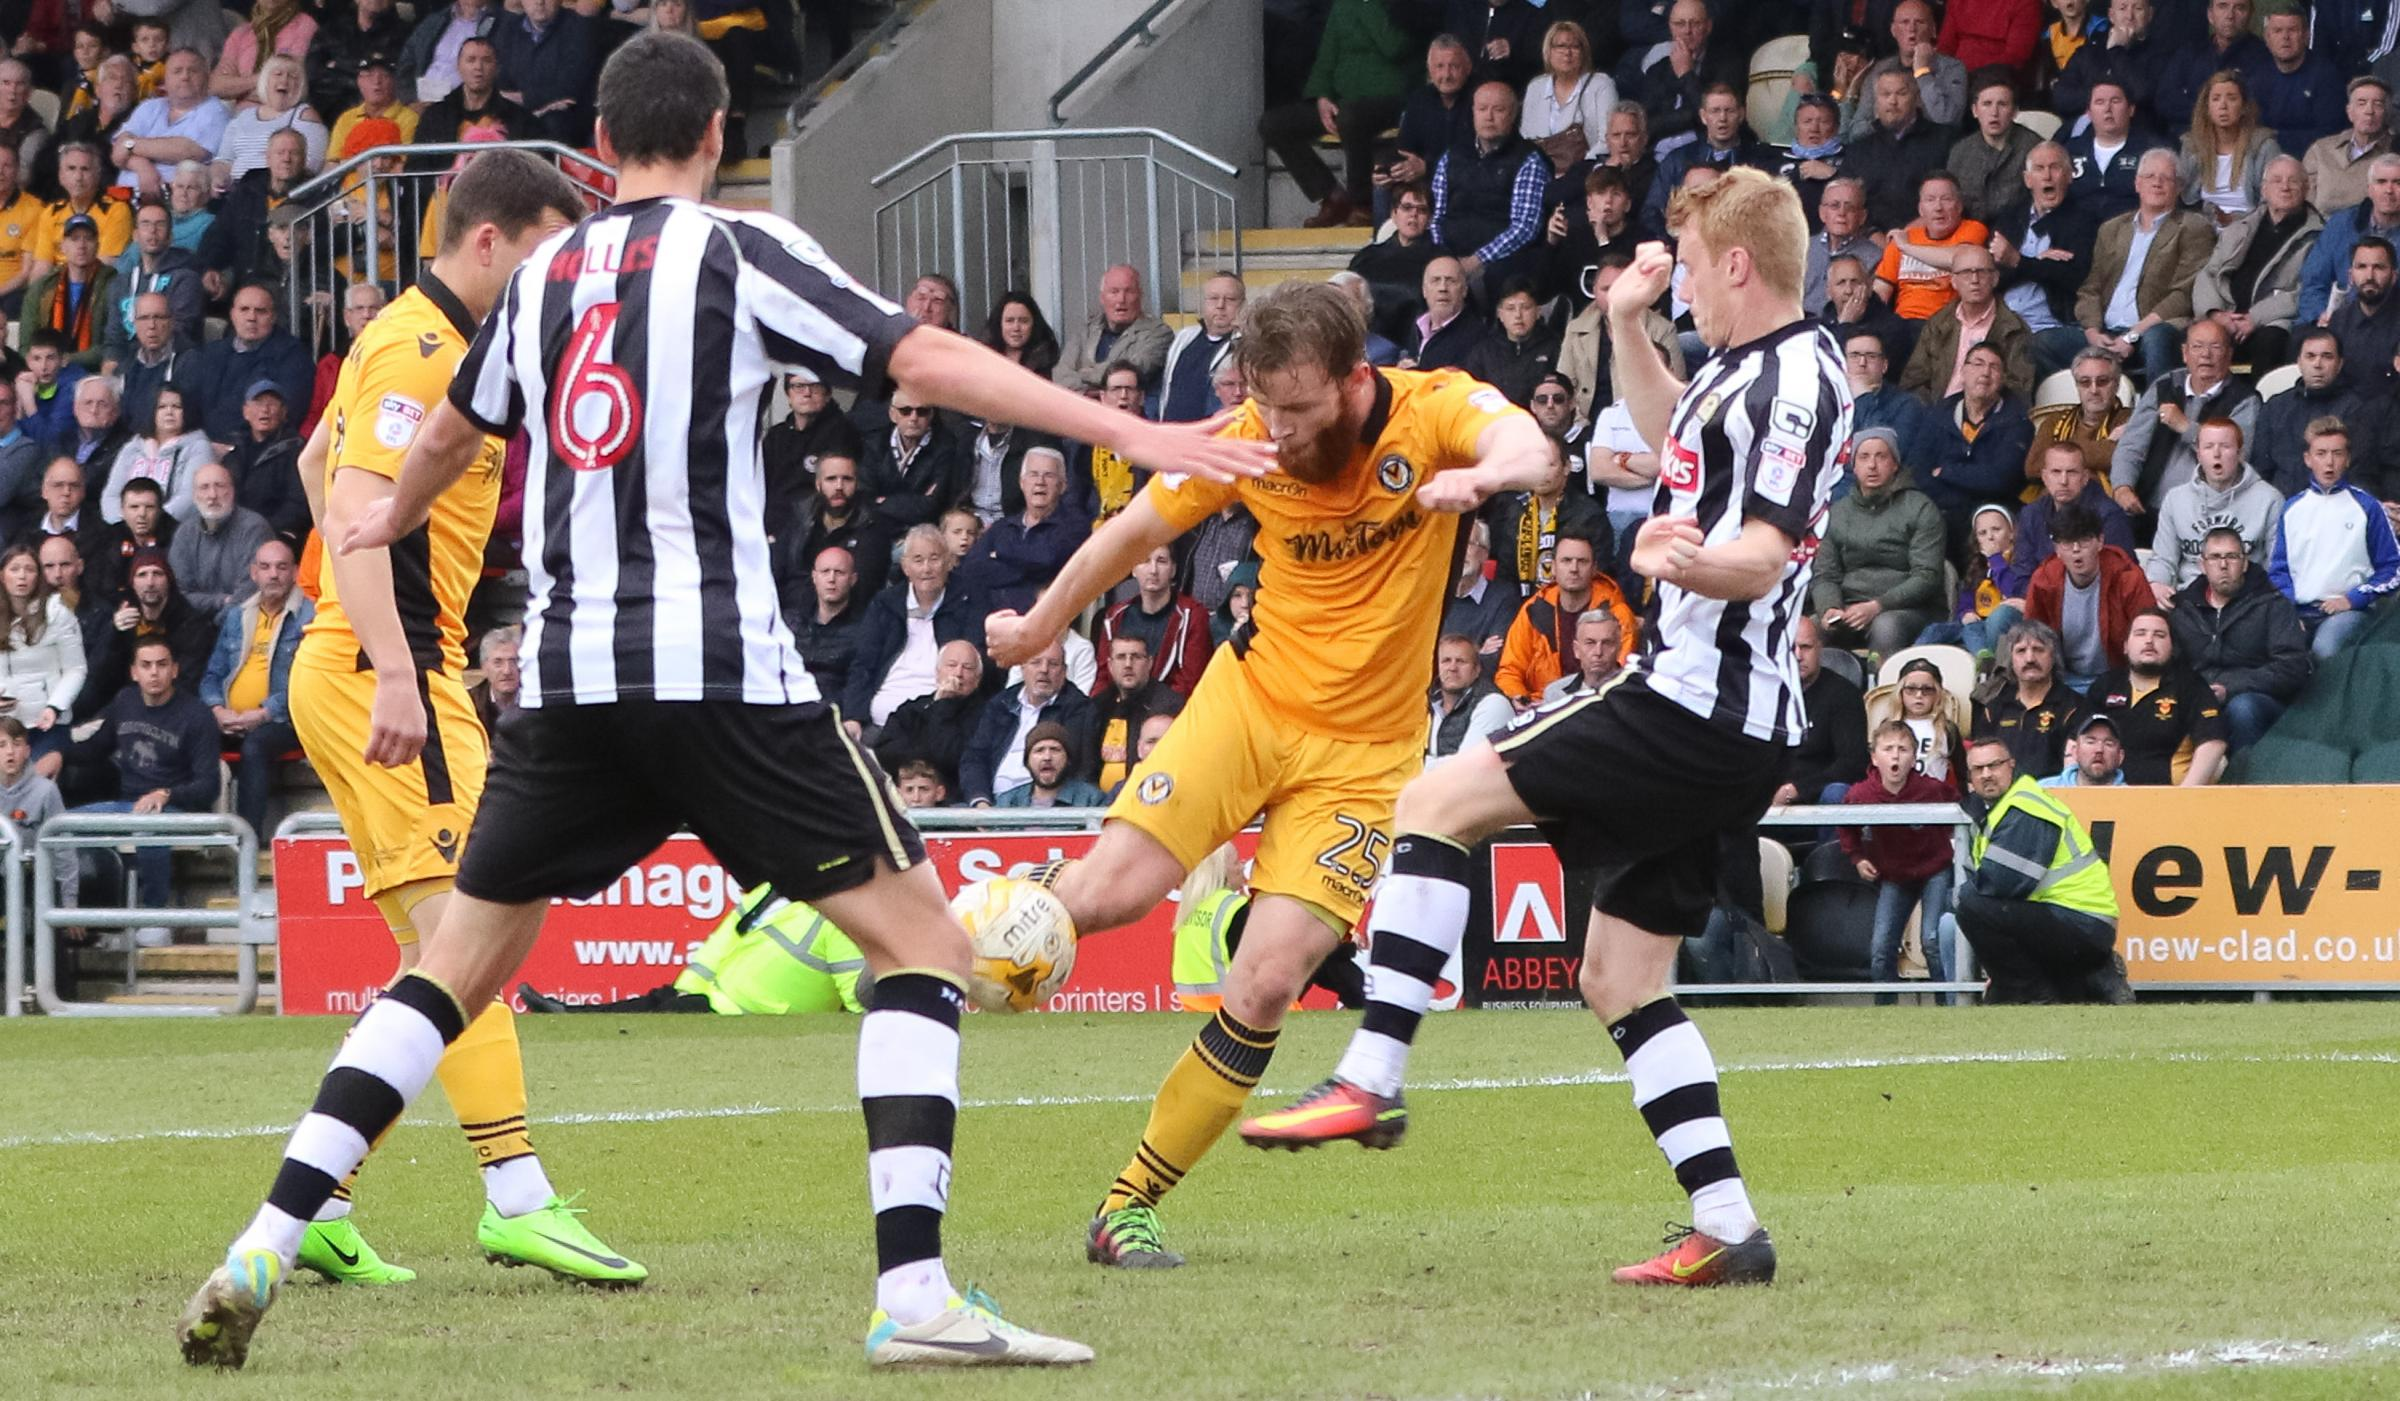 FLASHBACK: Mark O'Brien saved Newport County from relegation with this goal against Notts County in May 2017